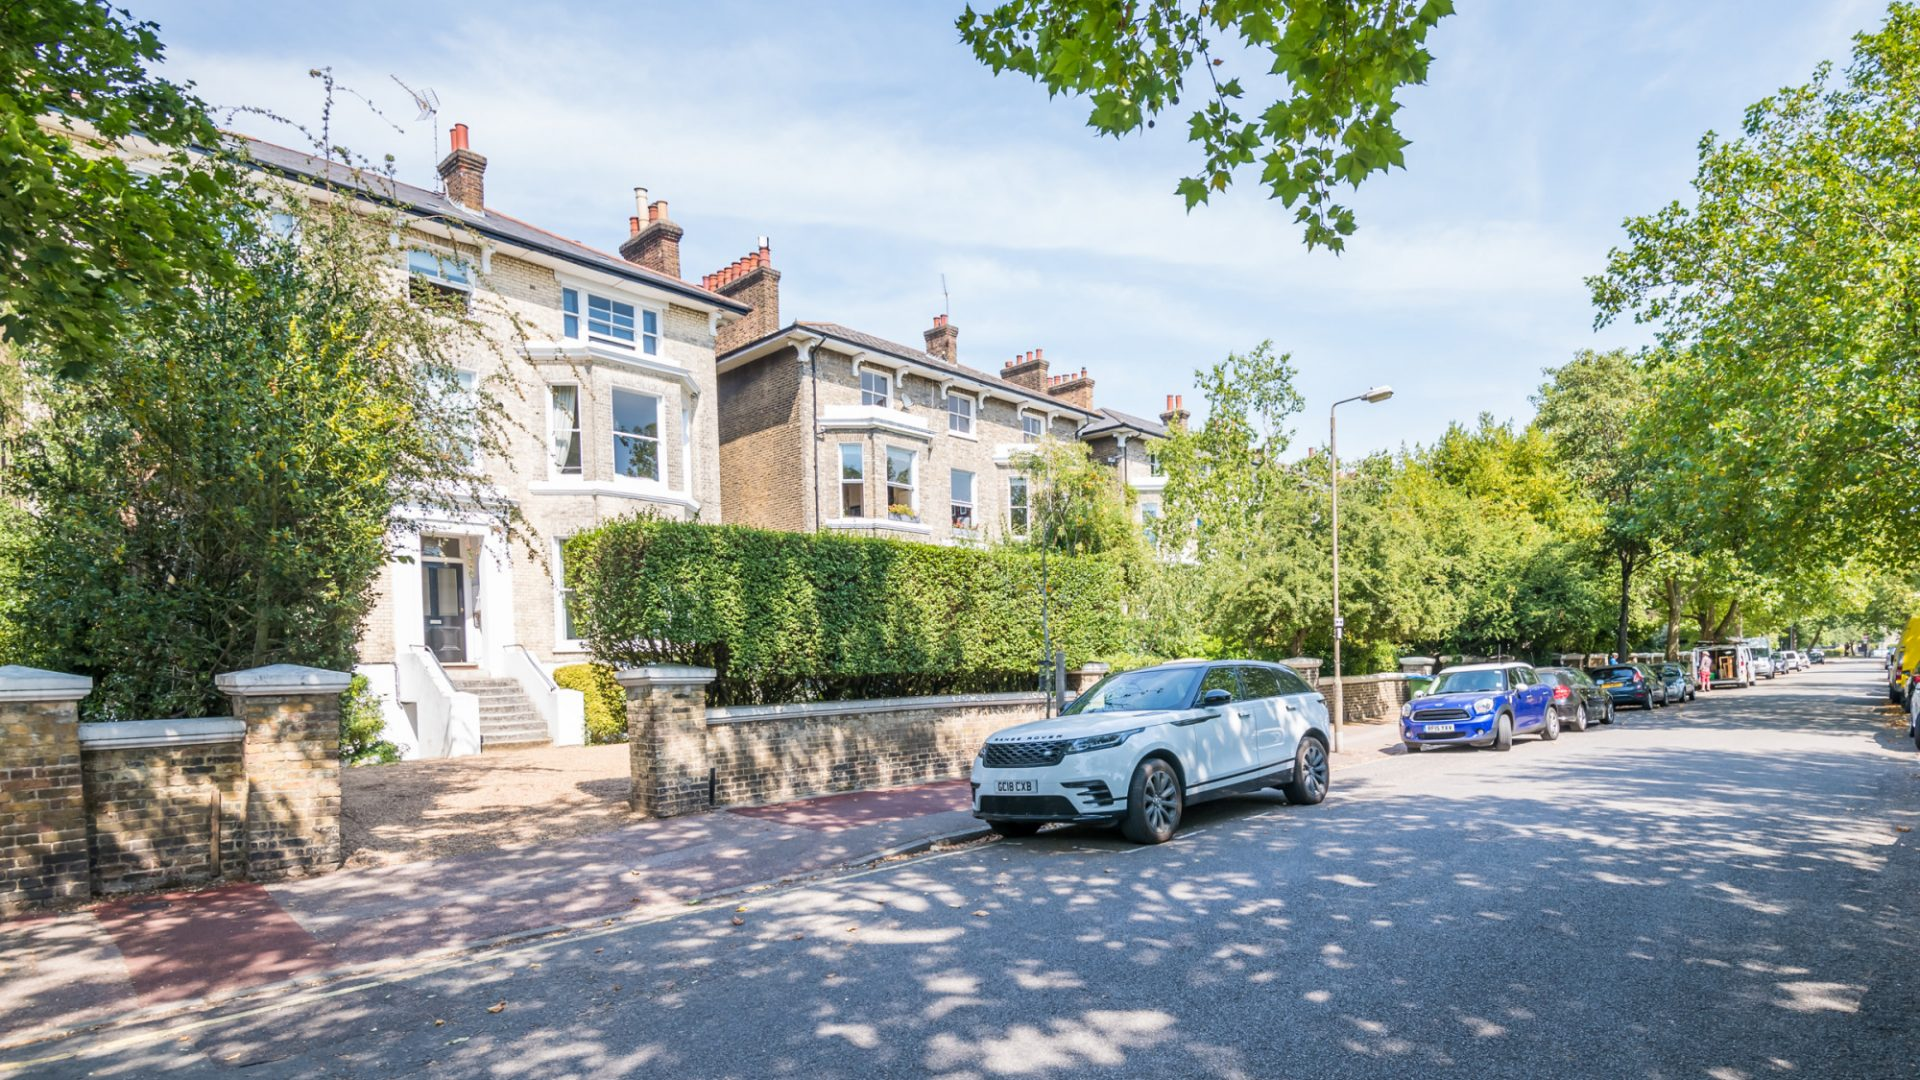 St Johns Park, Blackheath for sale with Mr and Mrs Clarke estate agent